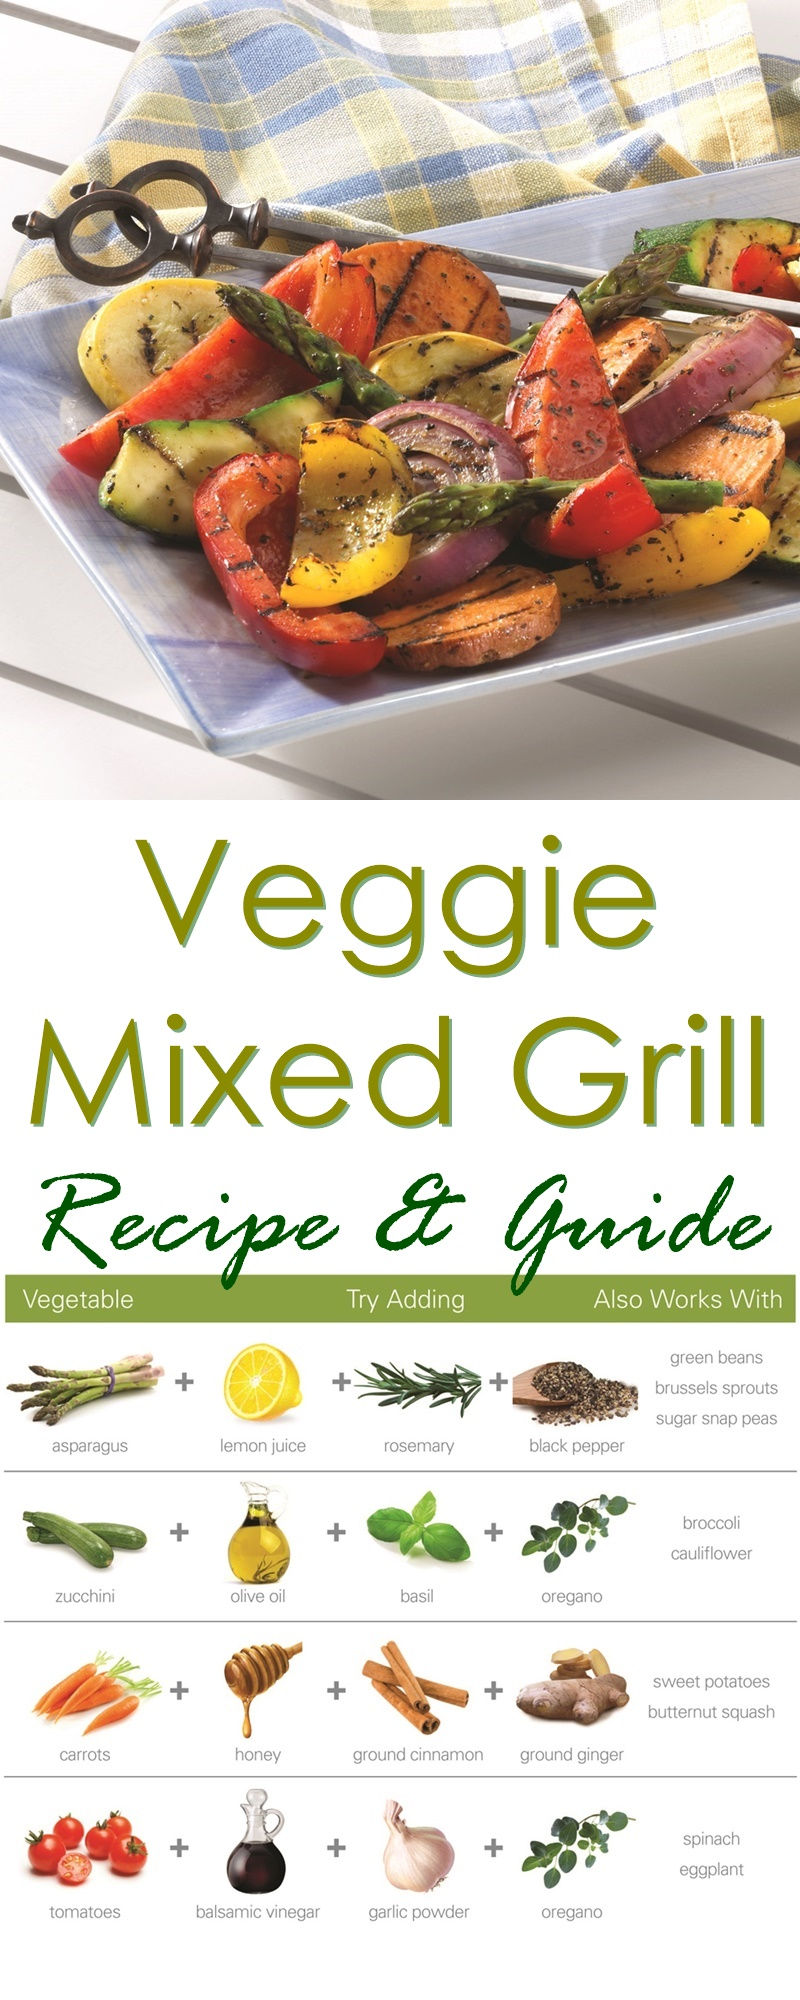 Vegetable Flavor Pairing Chart + Recipe for Garlic and Herb Mixed Vegetable Grill